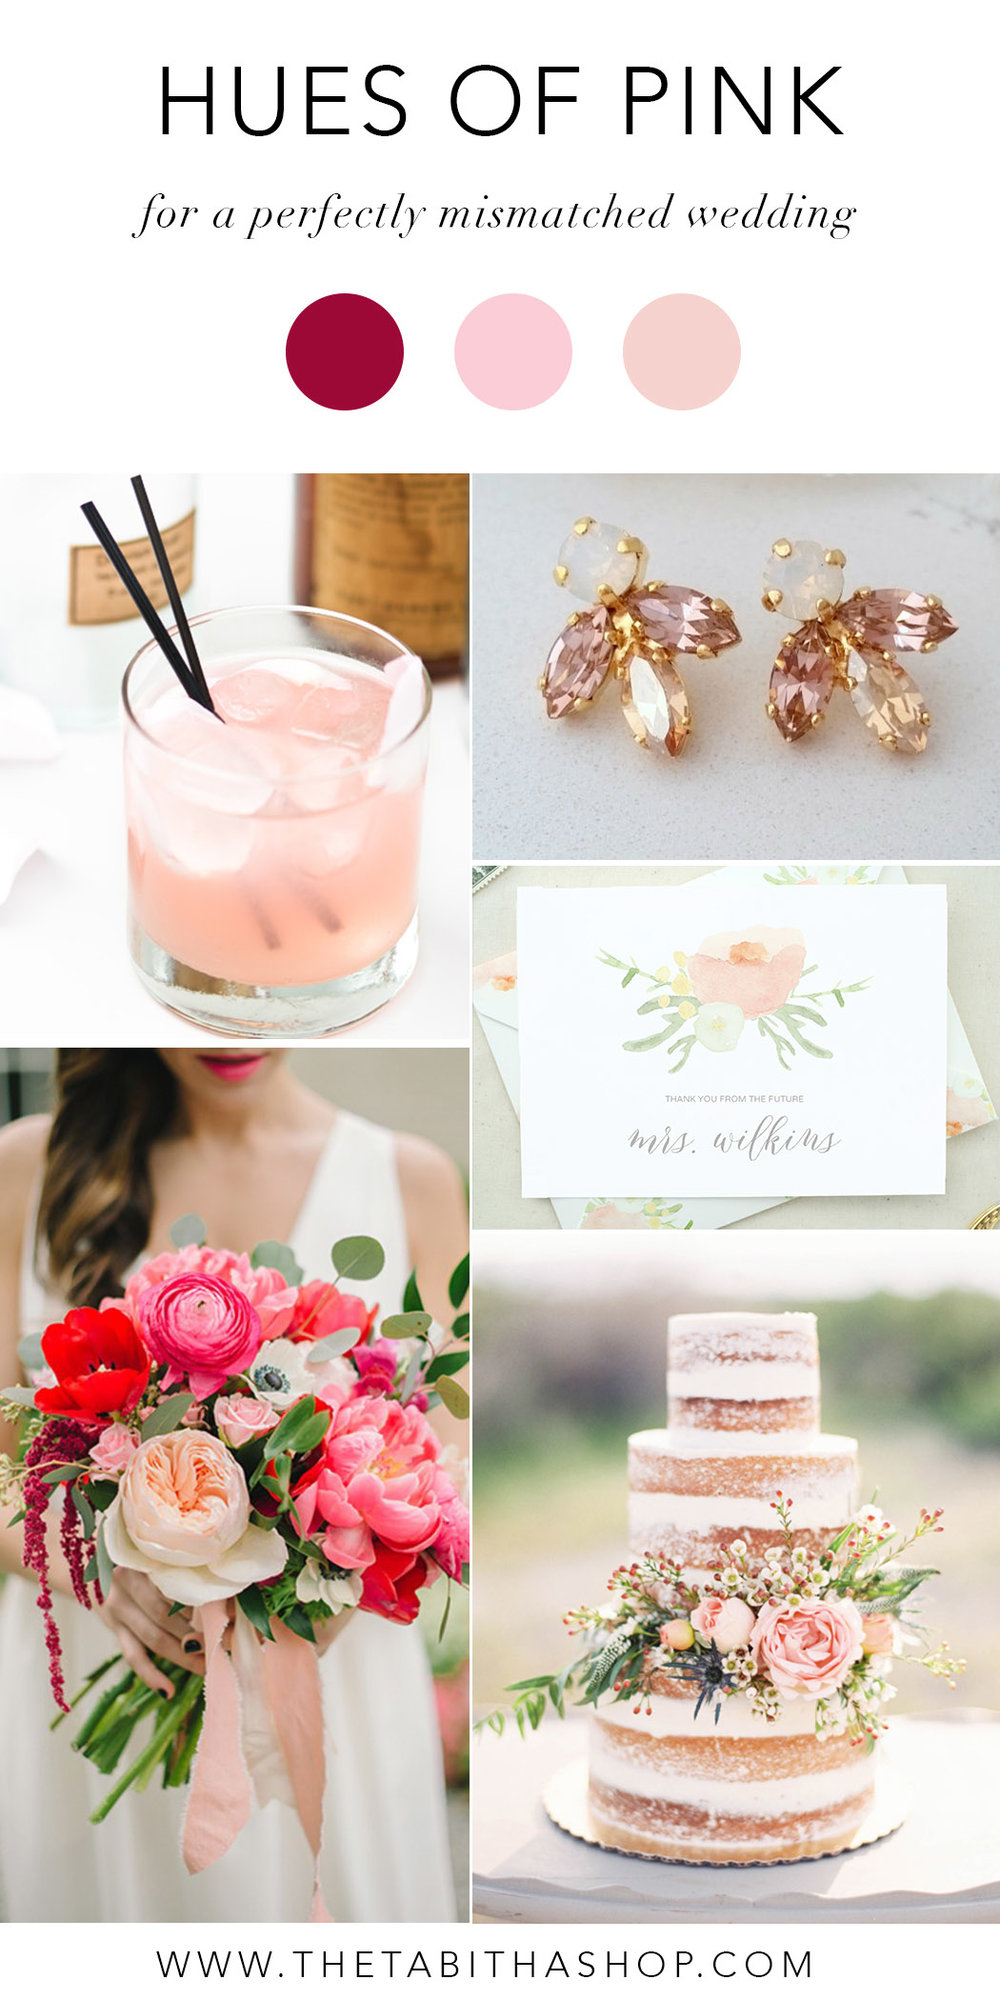 Clockwise, starting top left: via  Design Sponge  // Earrings by  Eldor Tina Jewelry  //  Future Mrs. Card  by  The Tabitha Shop  // Photo by Mallory Renee Photography via  Wedding Sparrow  // Photo by  Sarah McKenzie Photography  and florals by  Blush & Vine  via  Brides